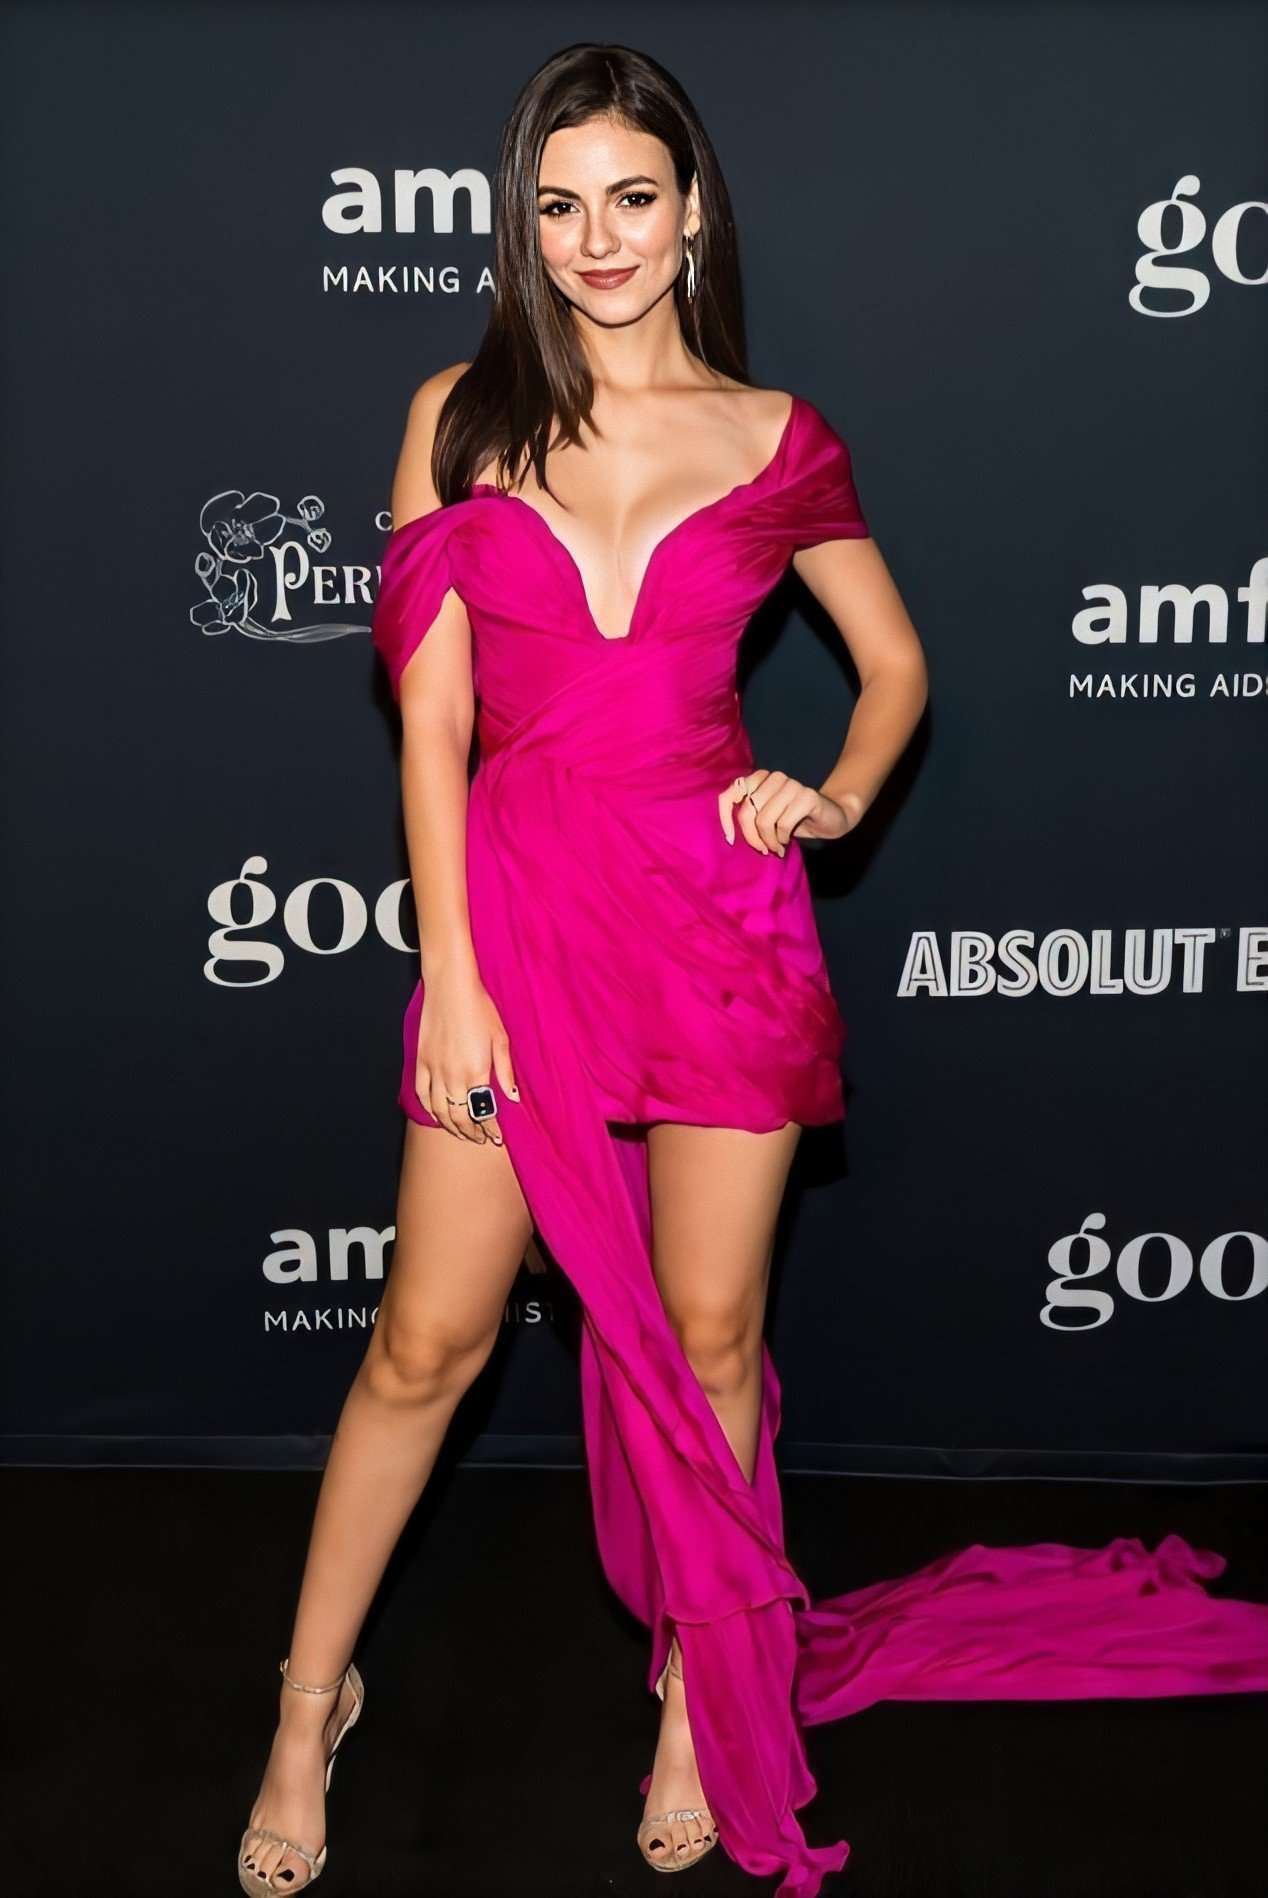 Victoria Justice at amfAR Charity Poker Tournament And Game Night in San Francisco